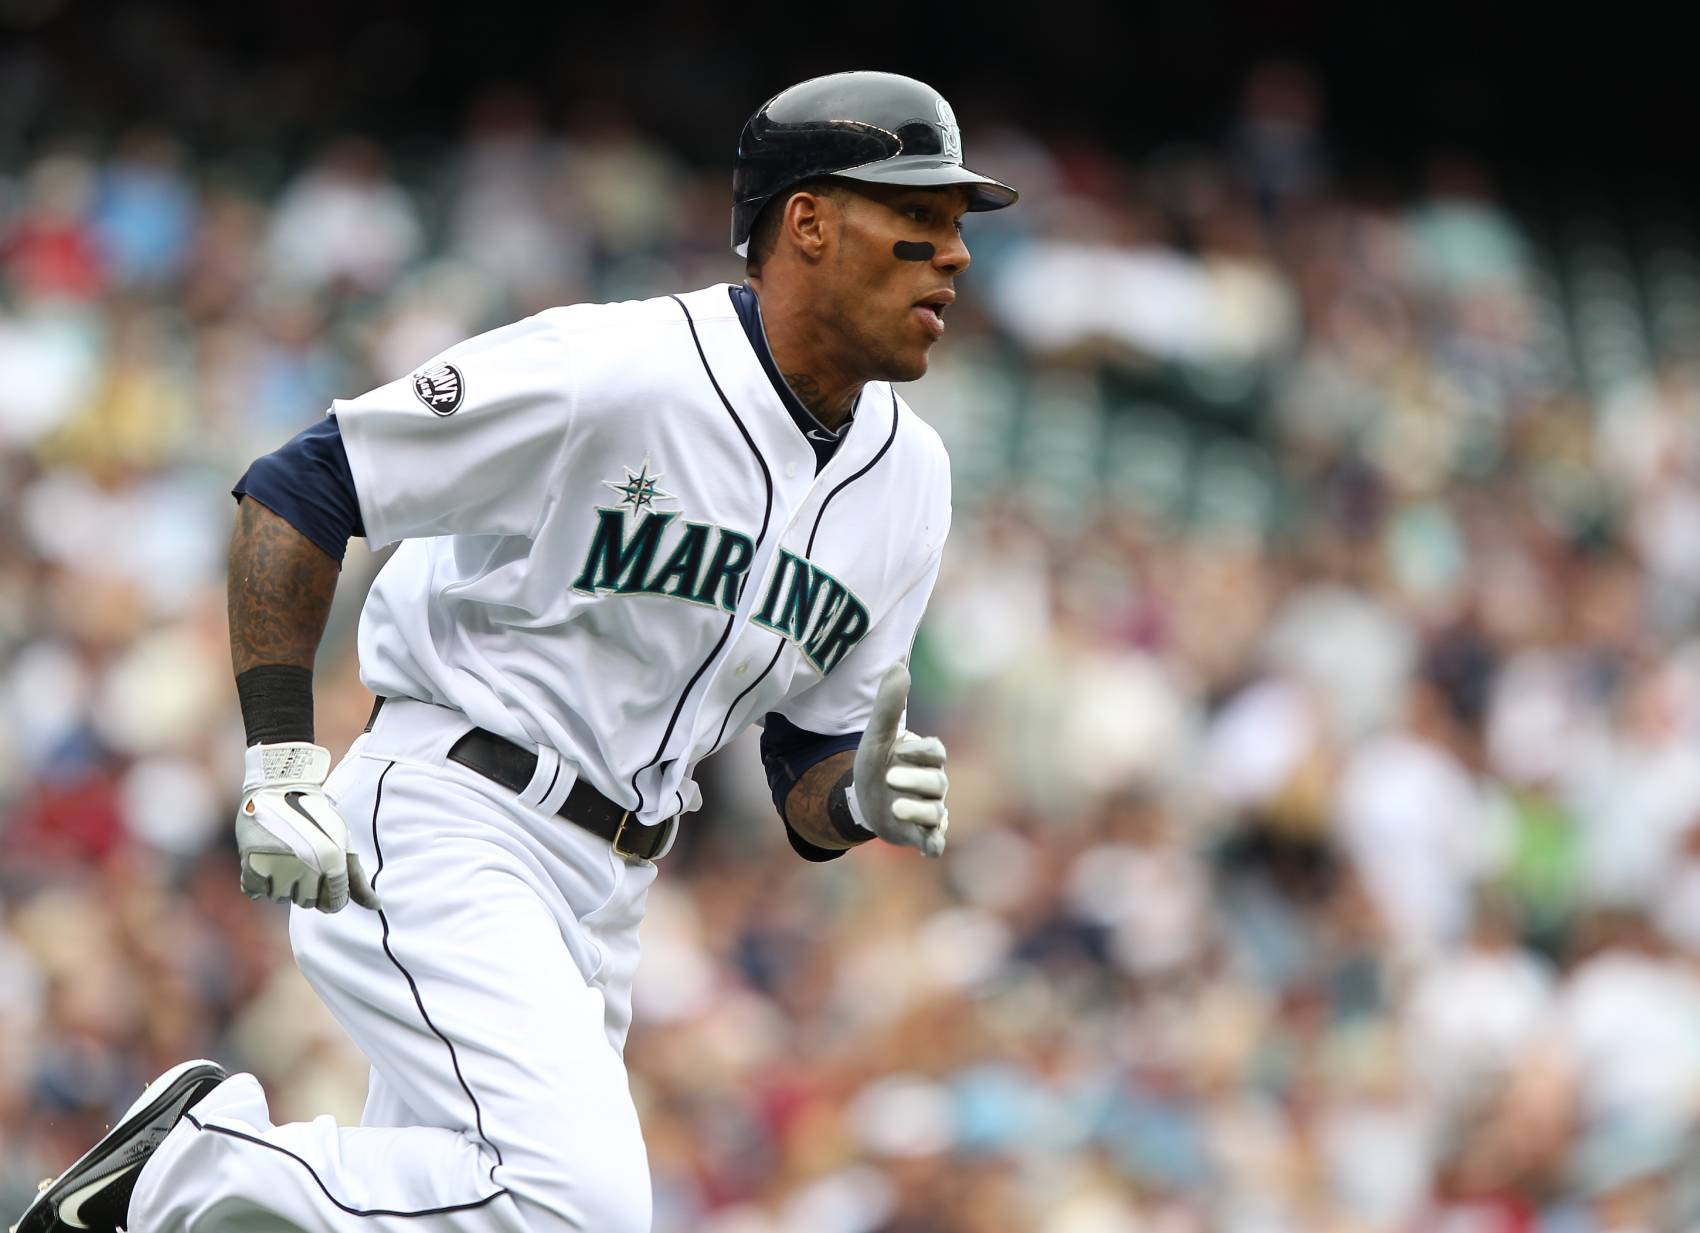 Former Seattle Mariners outfielder Greg Halman was murdered in November 2011, just months after his most recent game.